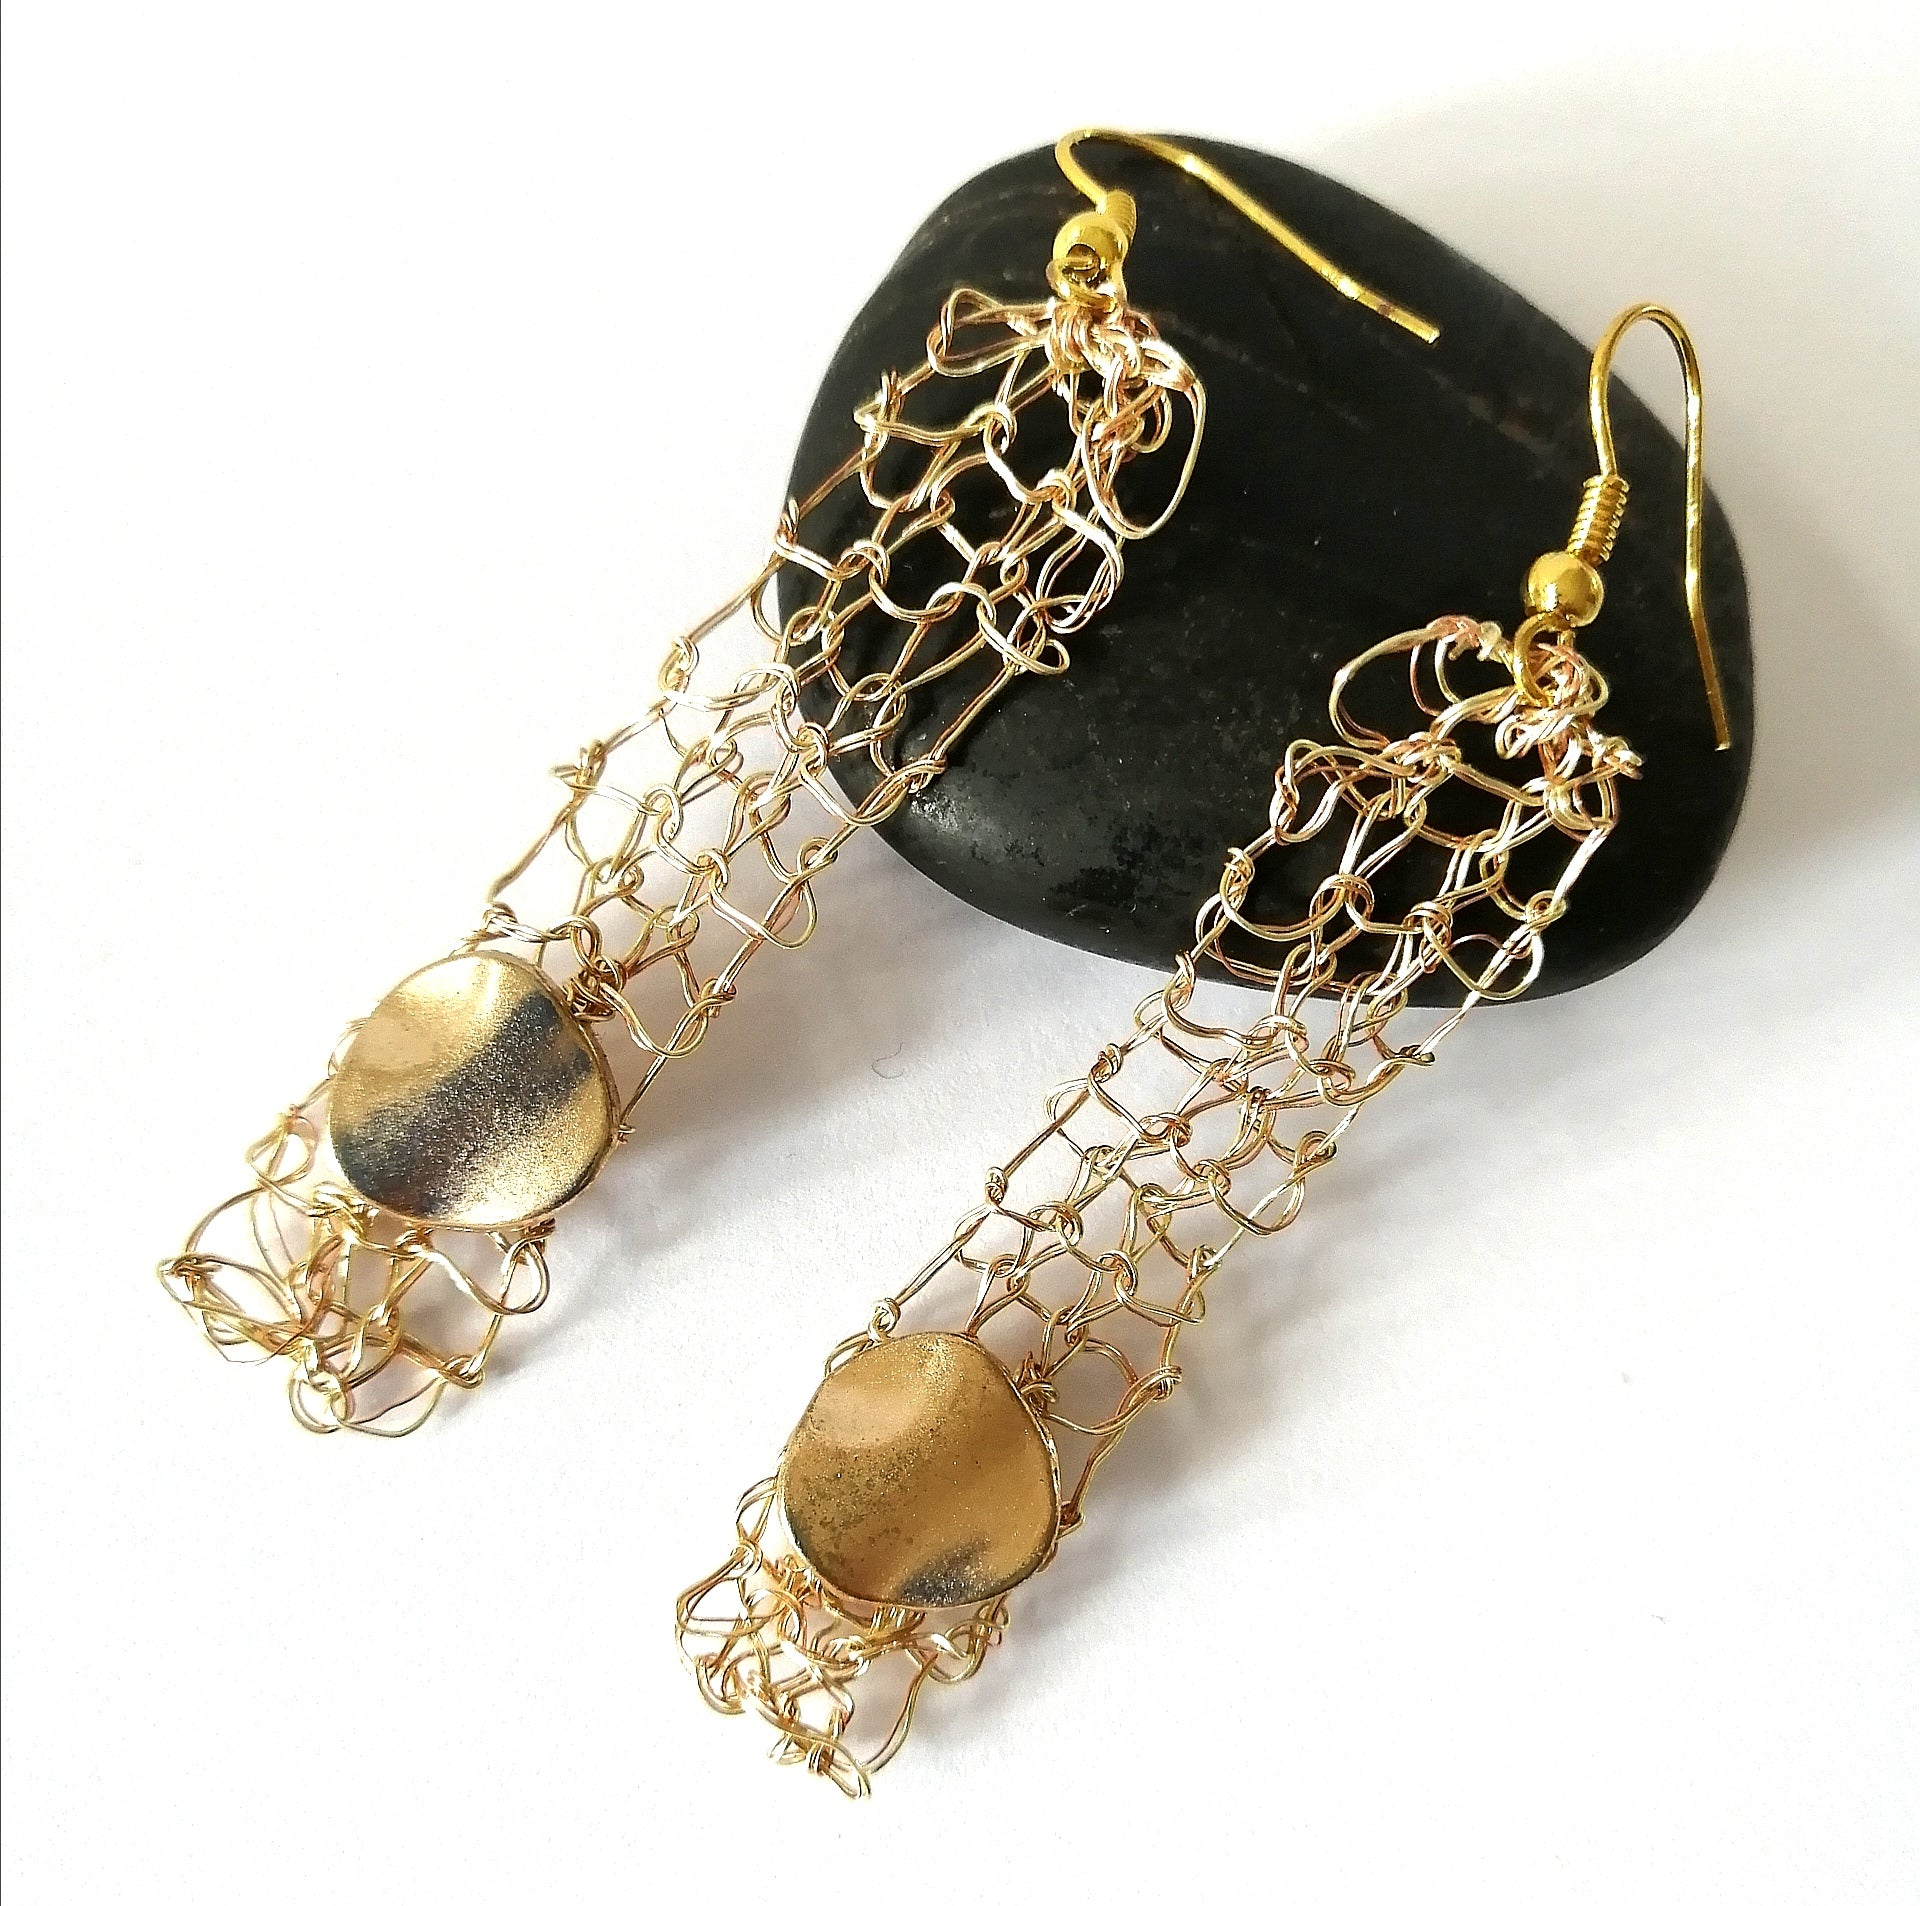 Golden Hand Woven Dangle Earrings - Glitter and Gem Jewellery